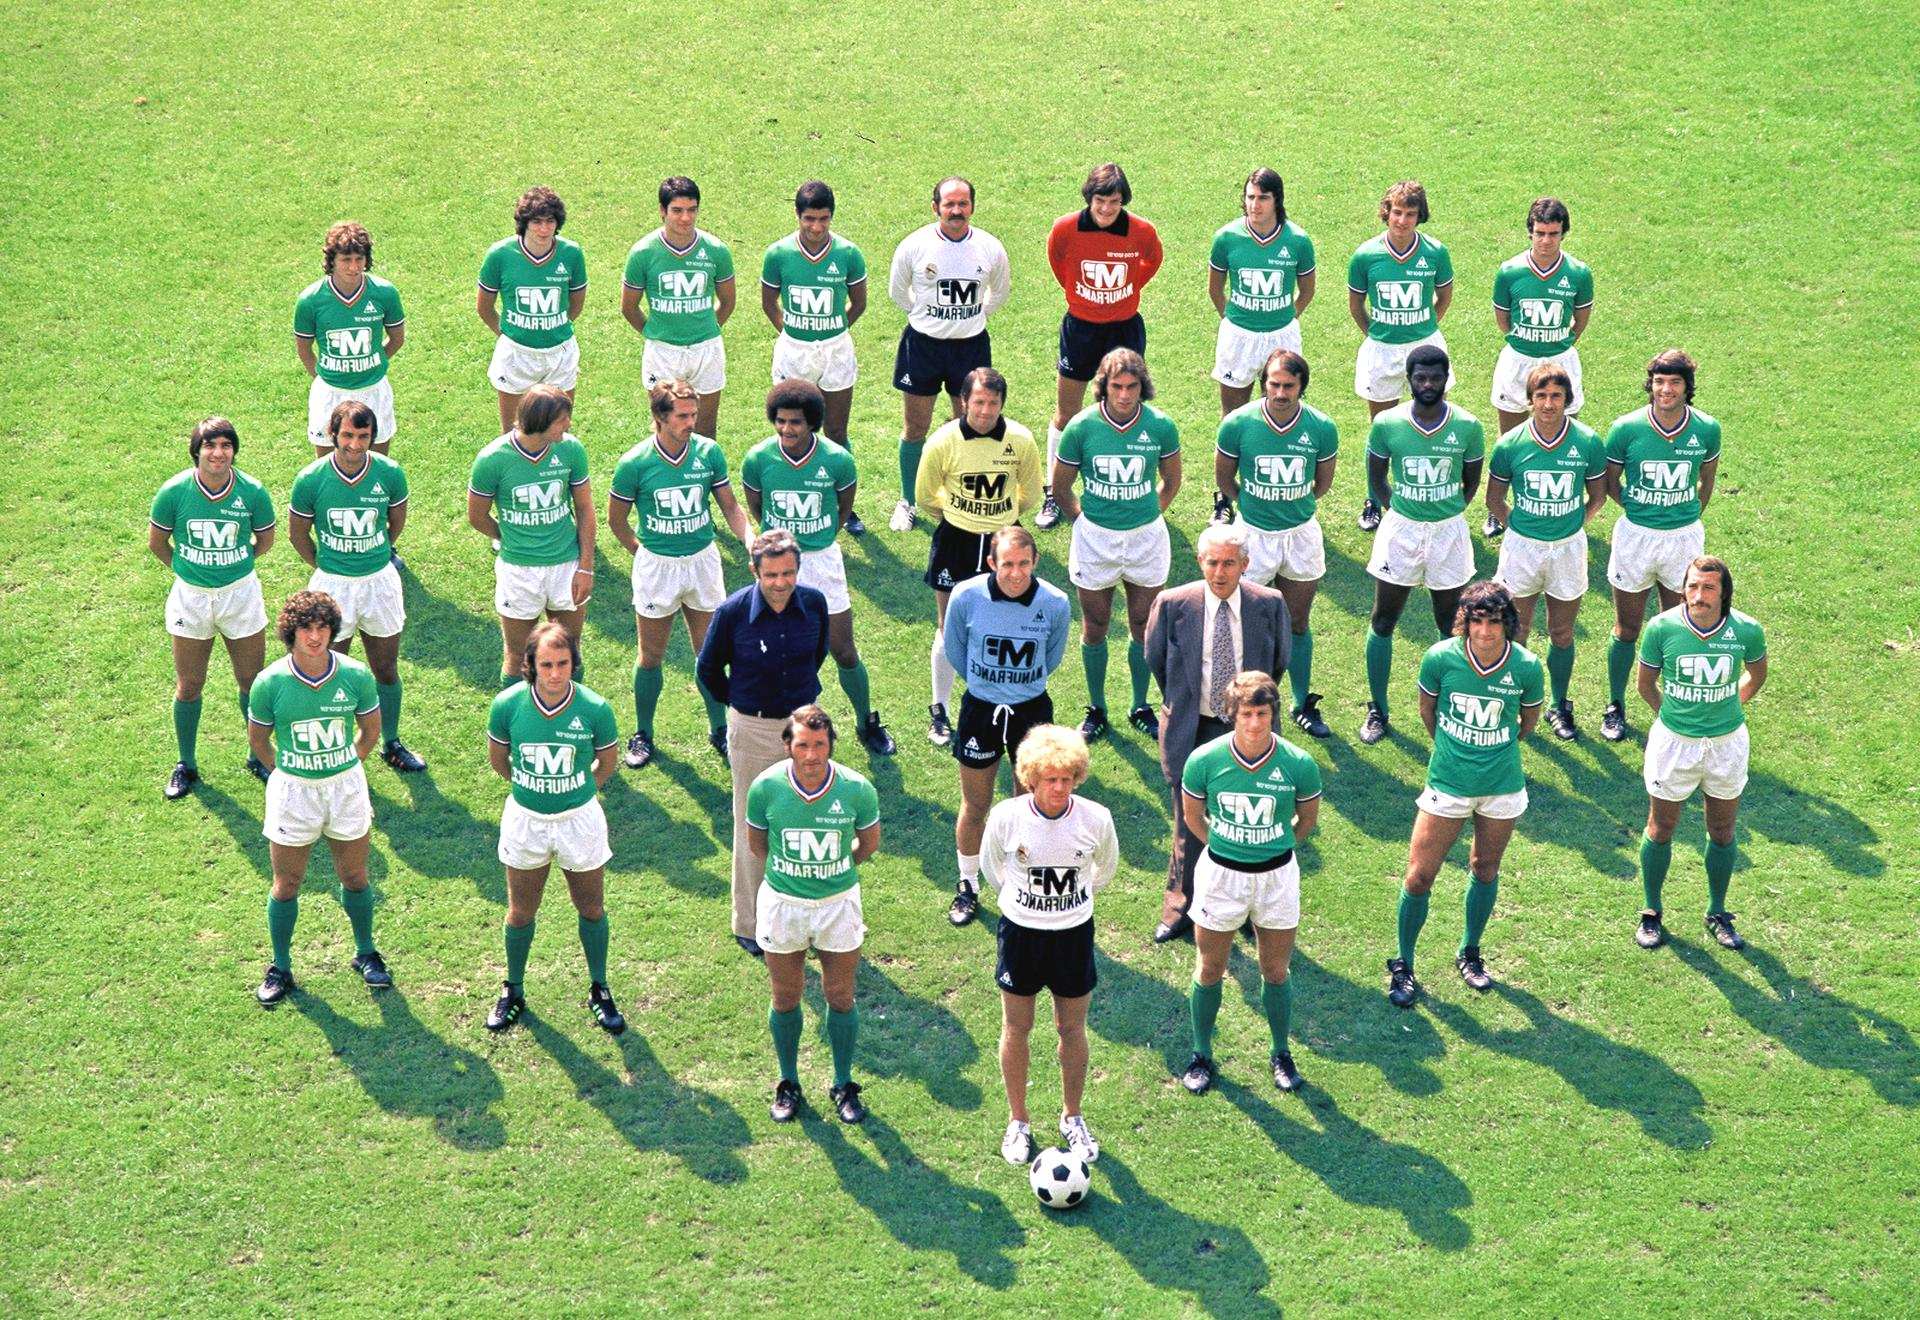 asse 1976 d'occasion